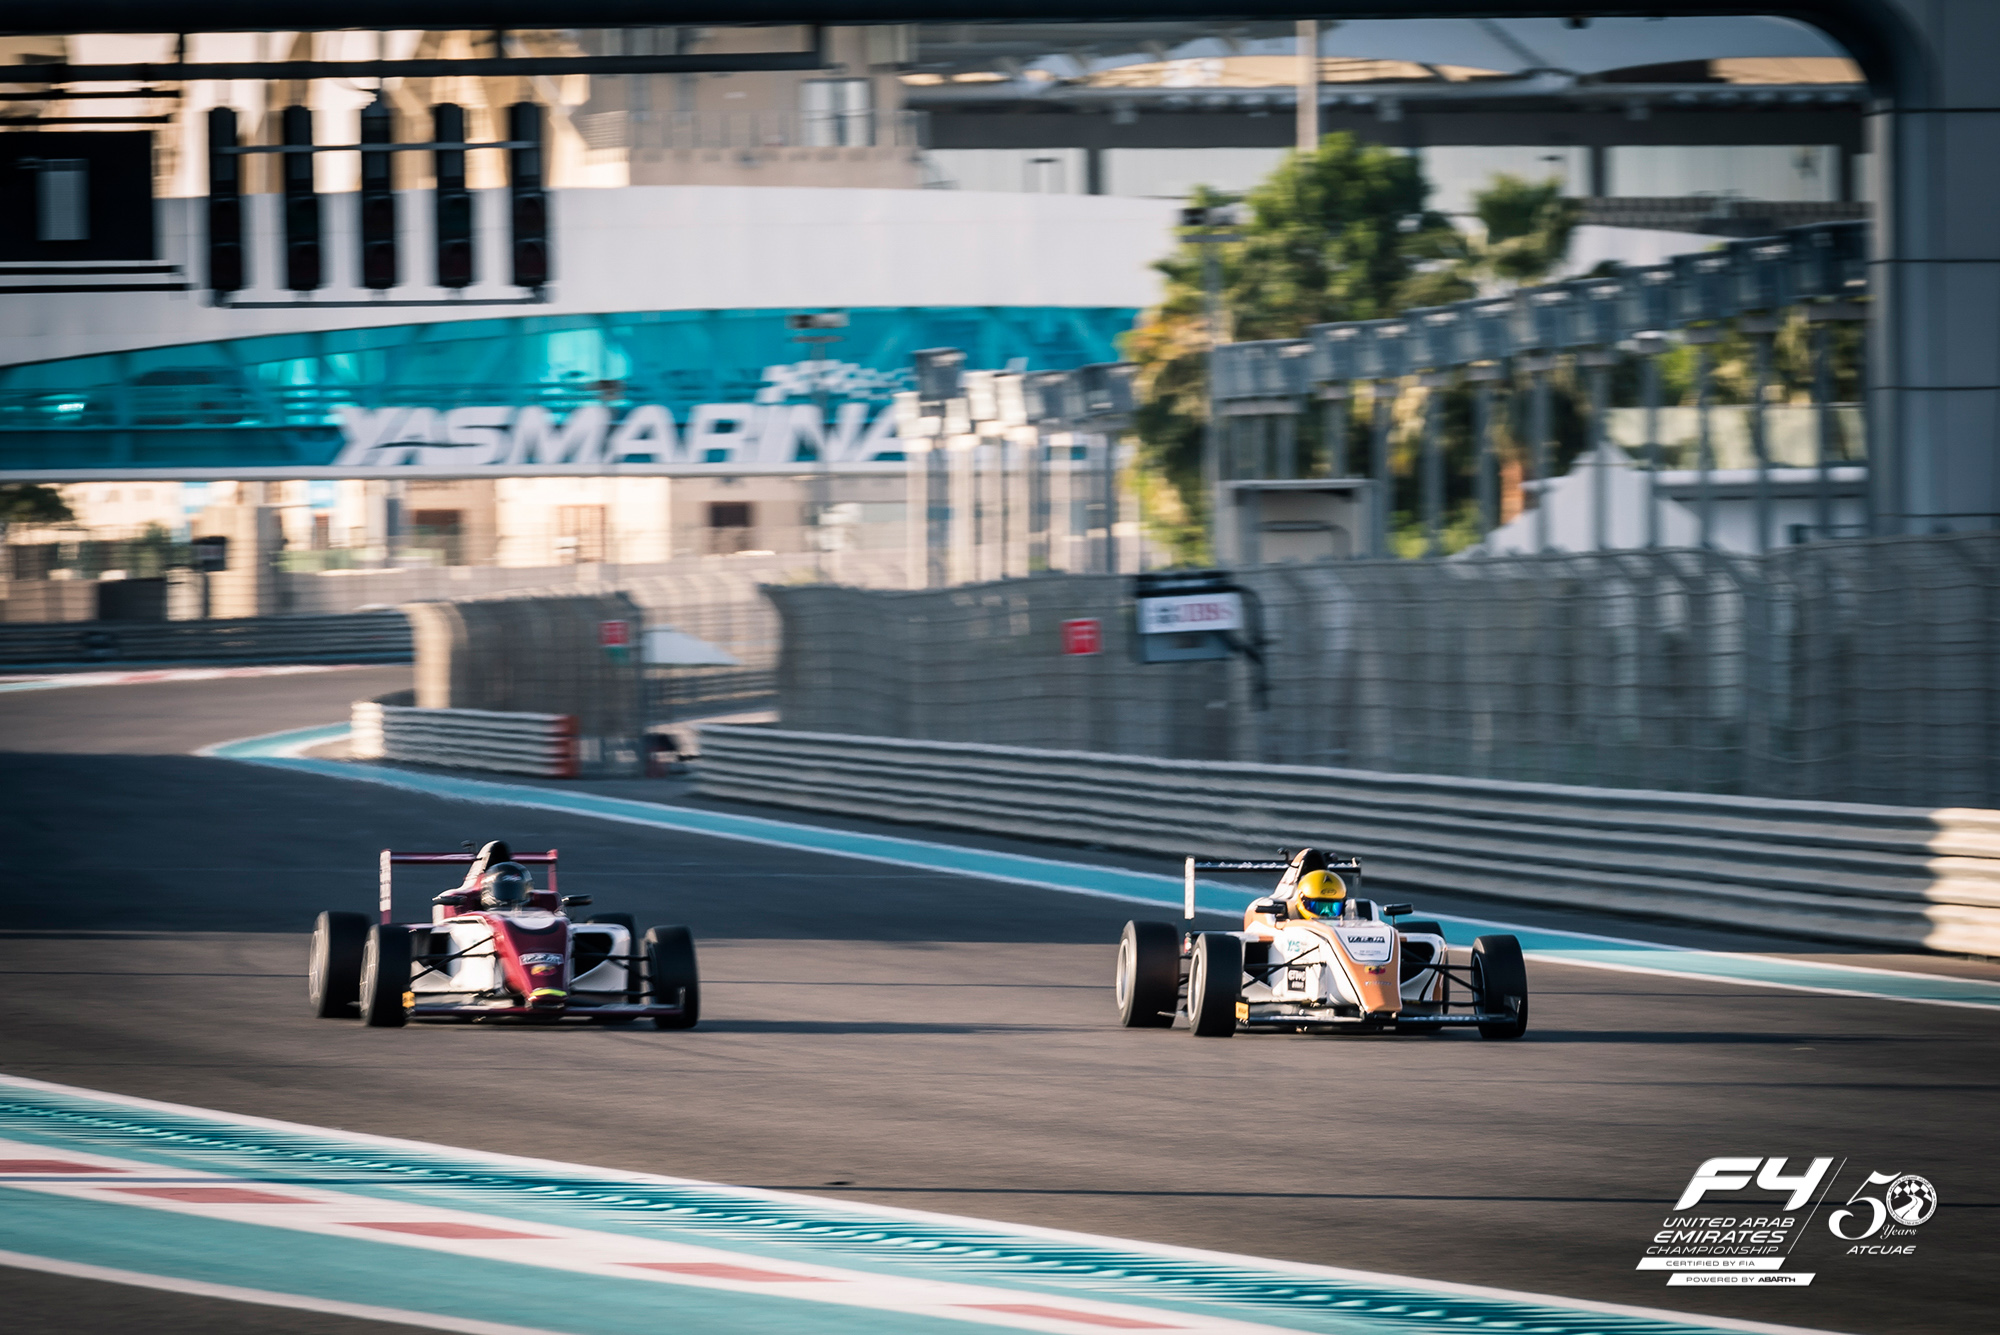 2016 12 18   F4 Second Roud   Abu Dhabi 5 Of 39